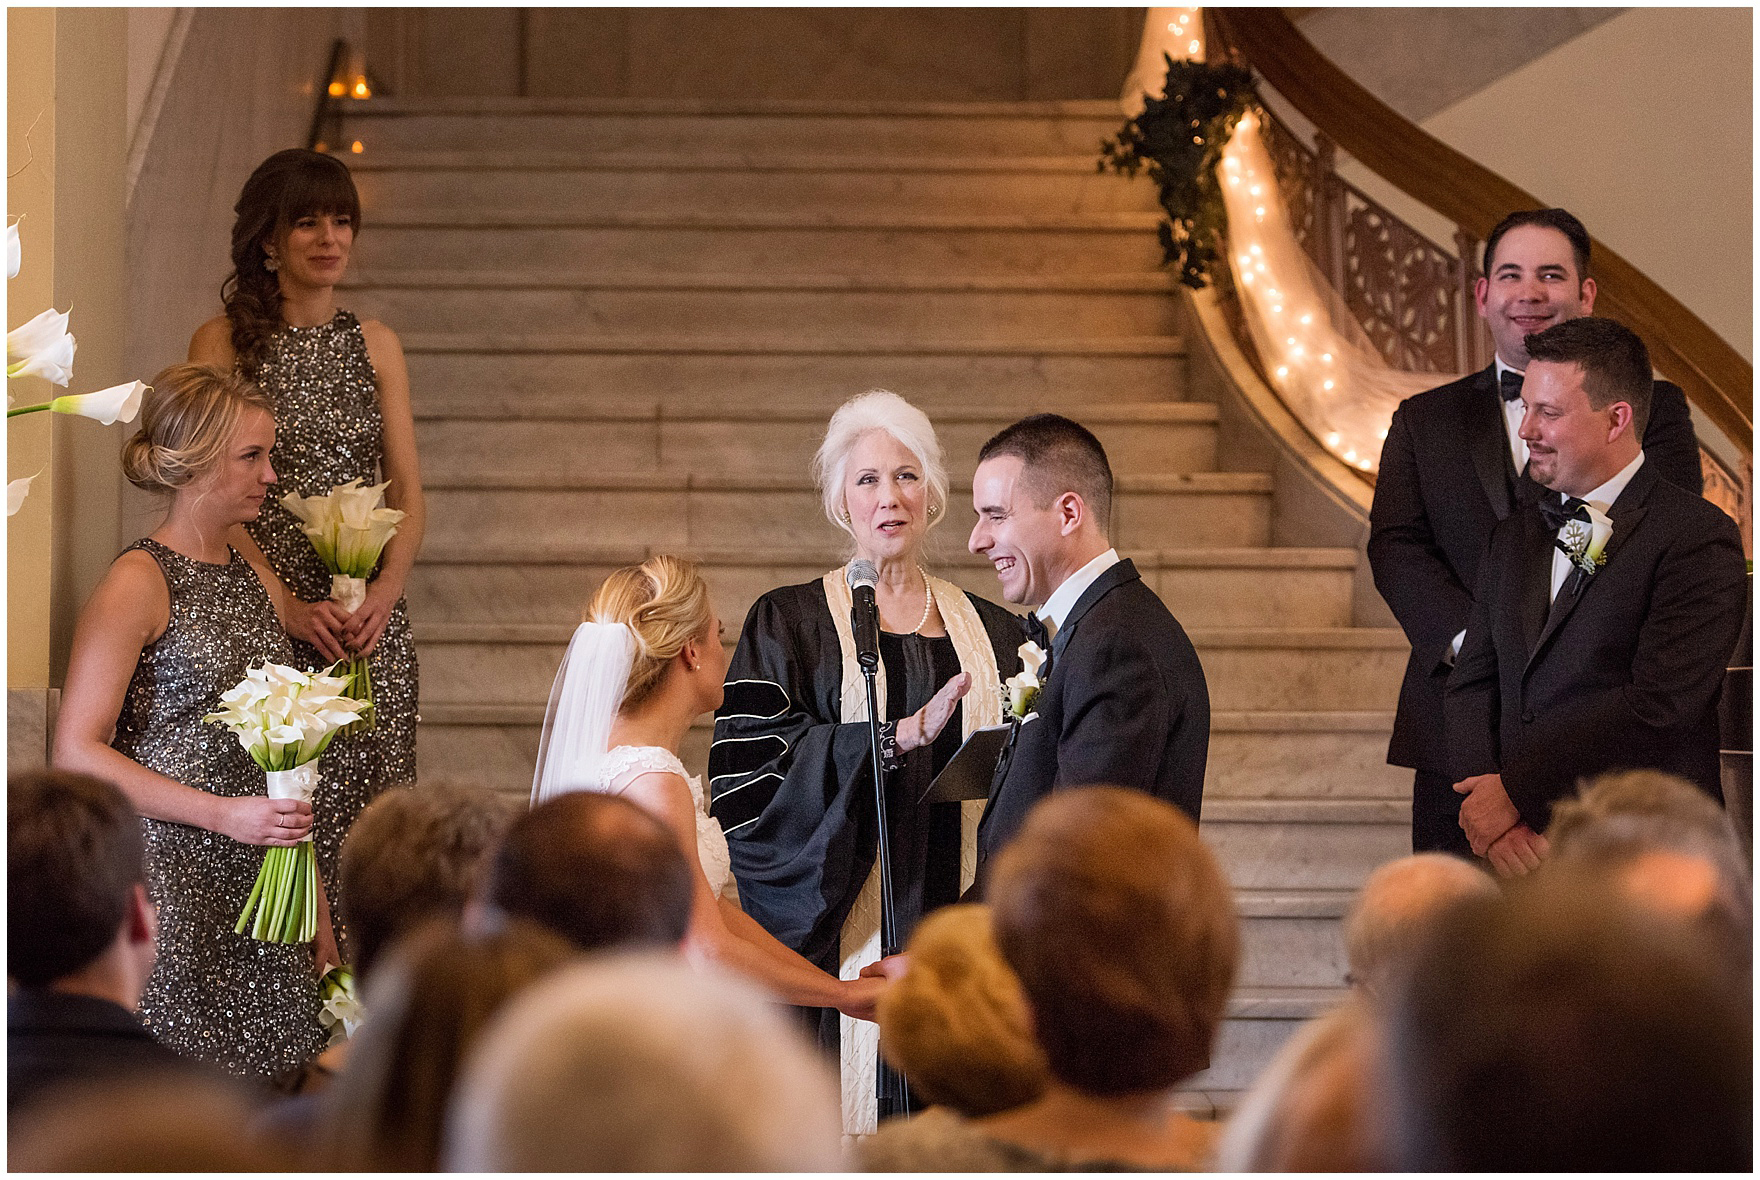 The bride and groom hold hands during a Newberry Library Chicago wedding.